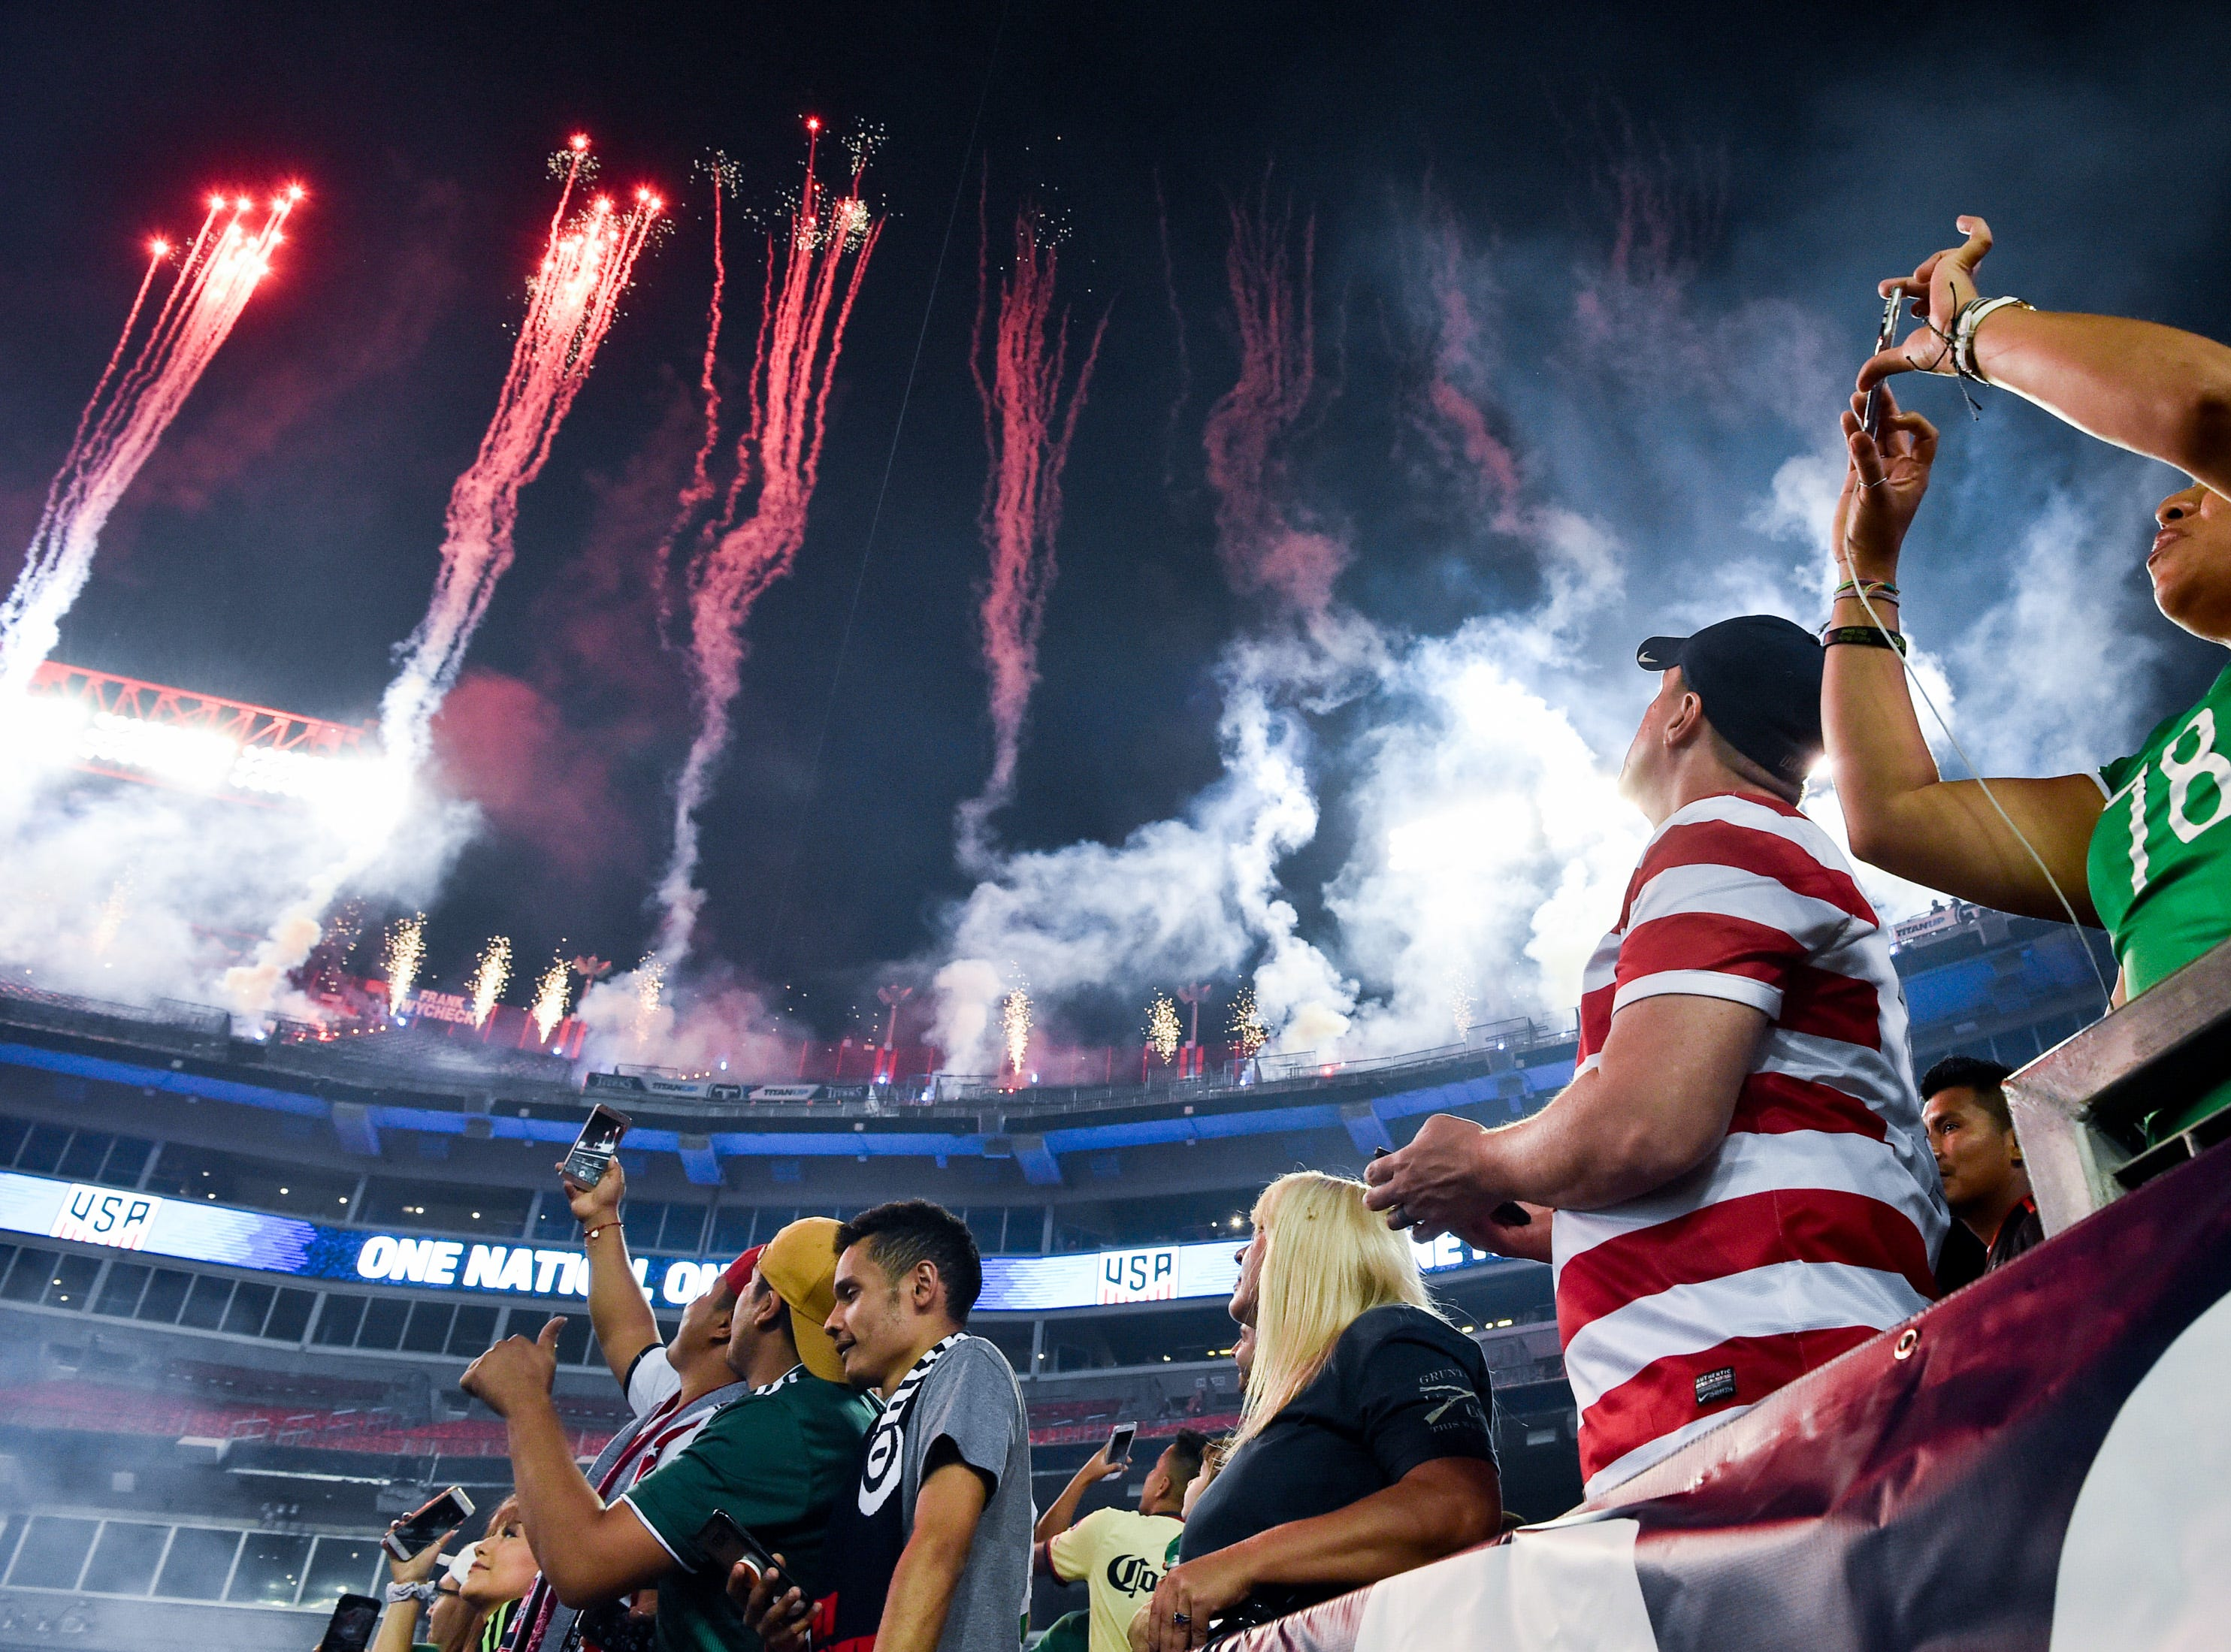 Fireworks light up the sky before the game between USA and Mexico at Nissan Stadium in Nashville, Tenn., Tuesday, Sept. 11, 2018.